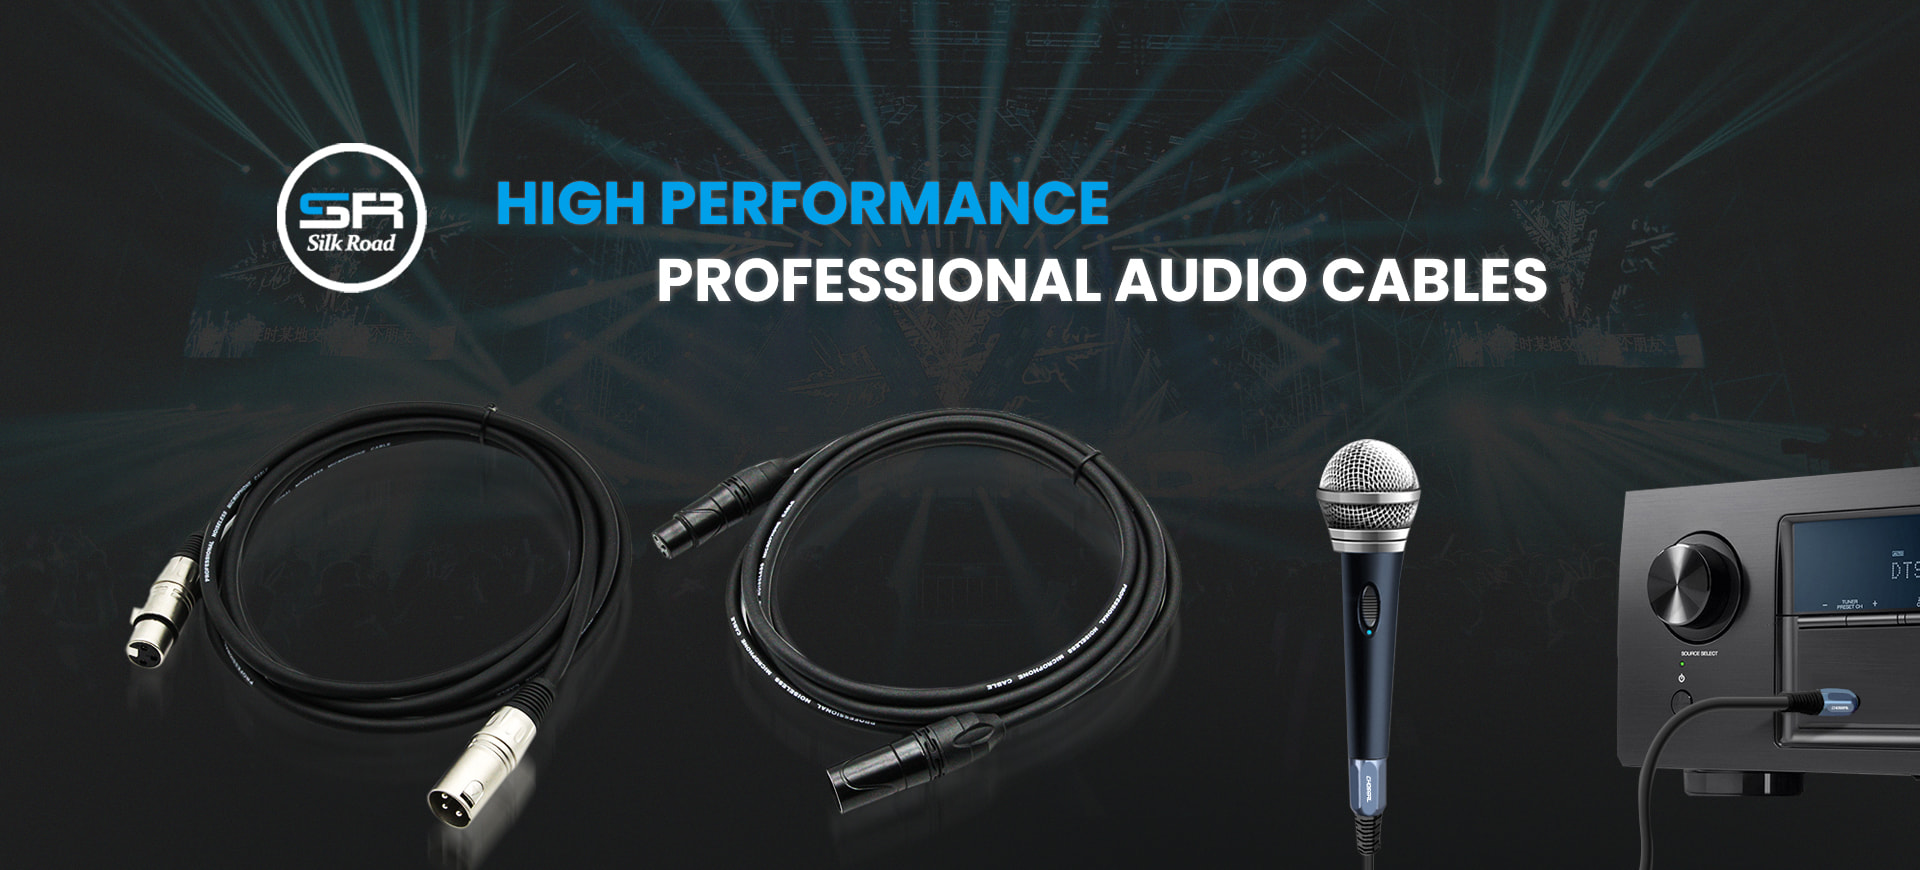 High Performance Professional Audio Cables